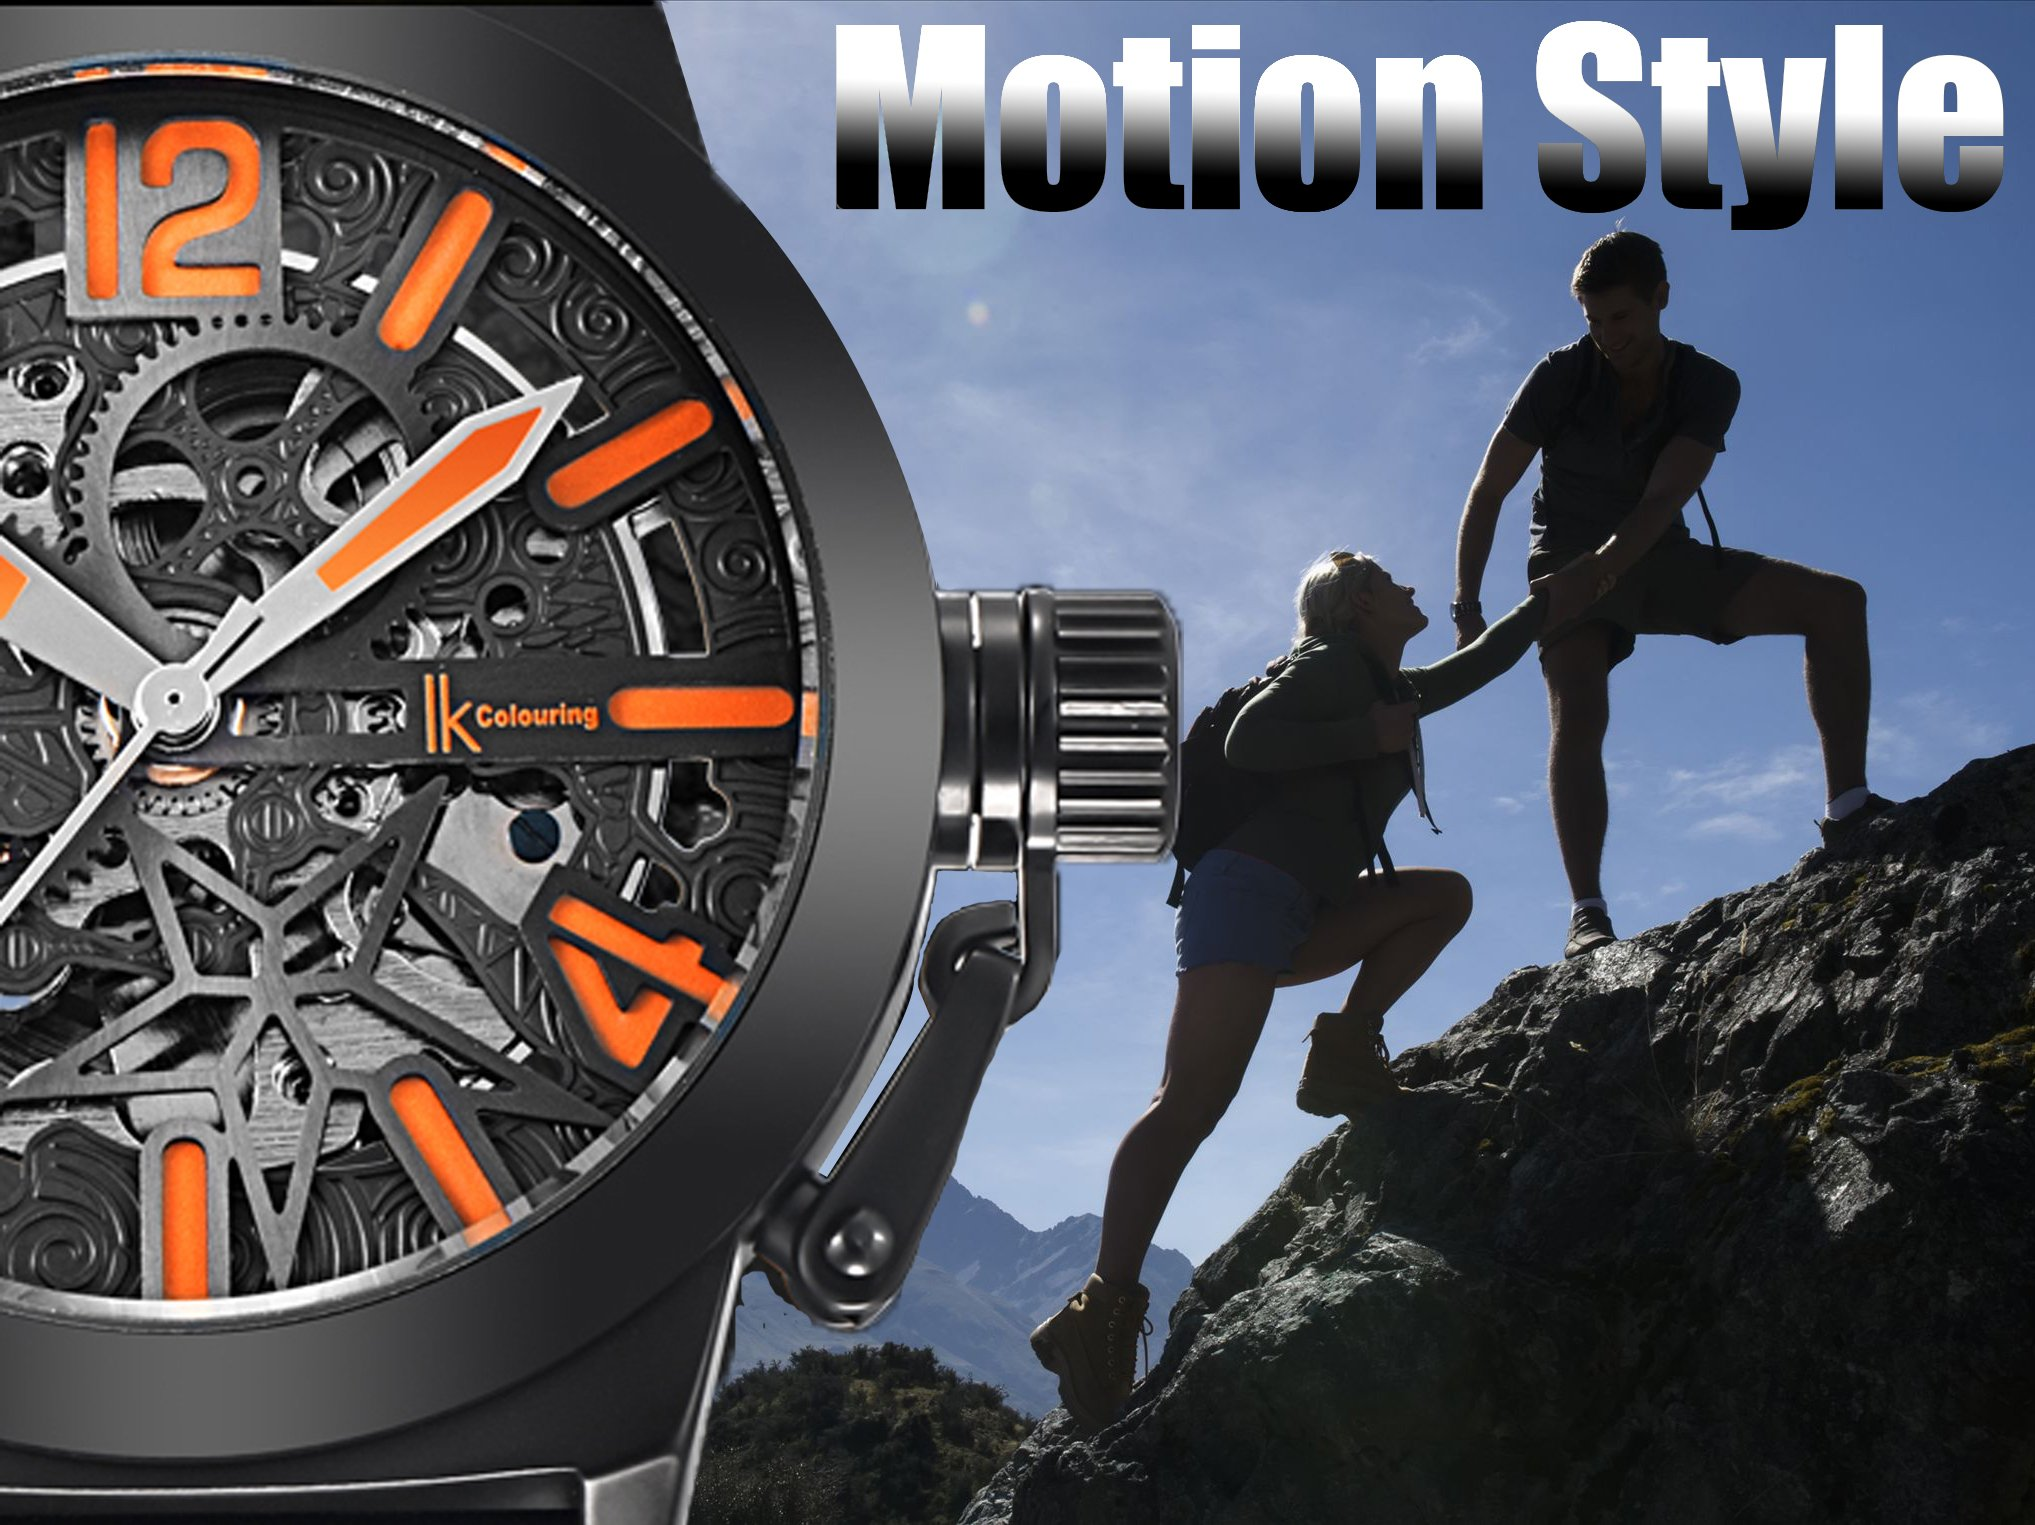 Gute Mechanical Men Automatic Watch, Motion Style Tone Self Winding Genuine Black Leather Band Watch by GLEIM (Image #6)